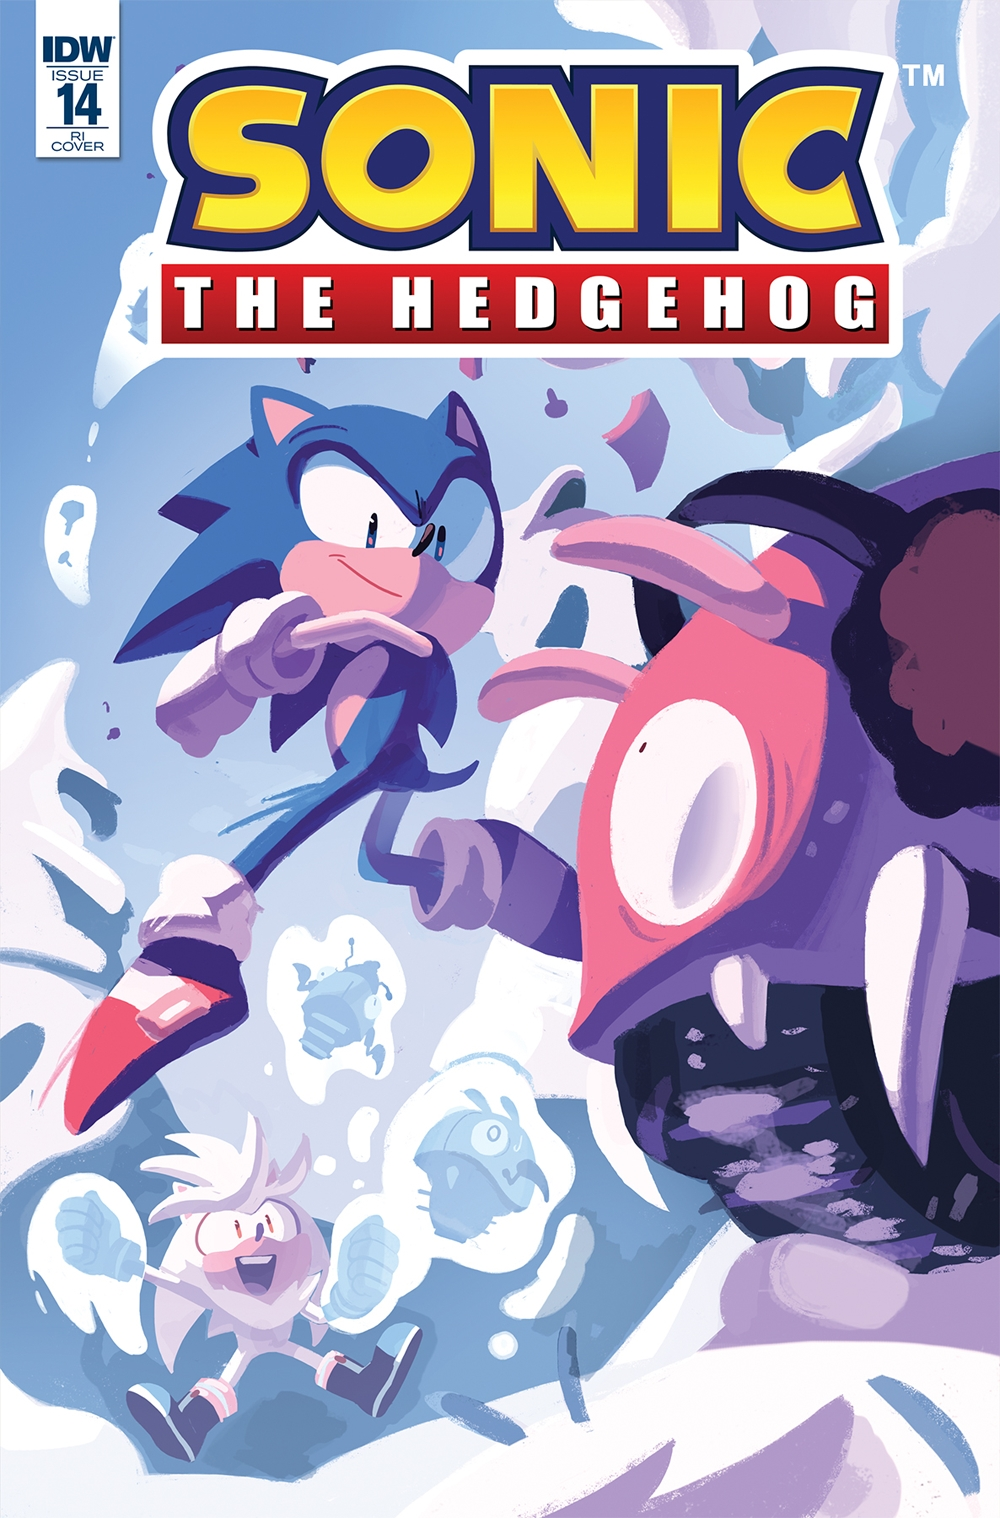 Comic Previews Solicitation For Idw Sonic The Hedgehog 14 The Sonic Stadium